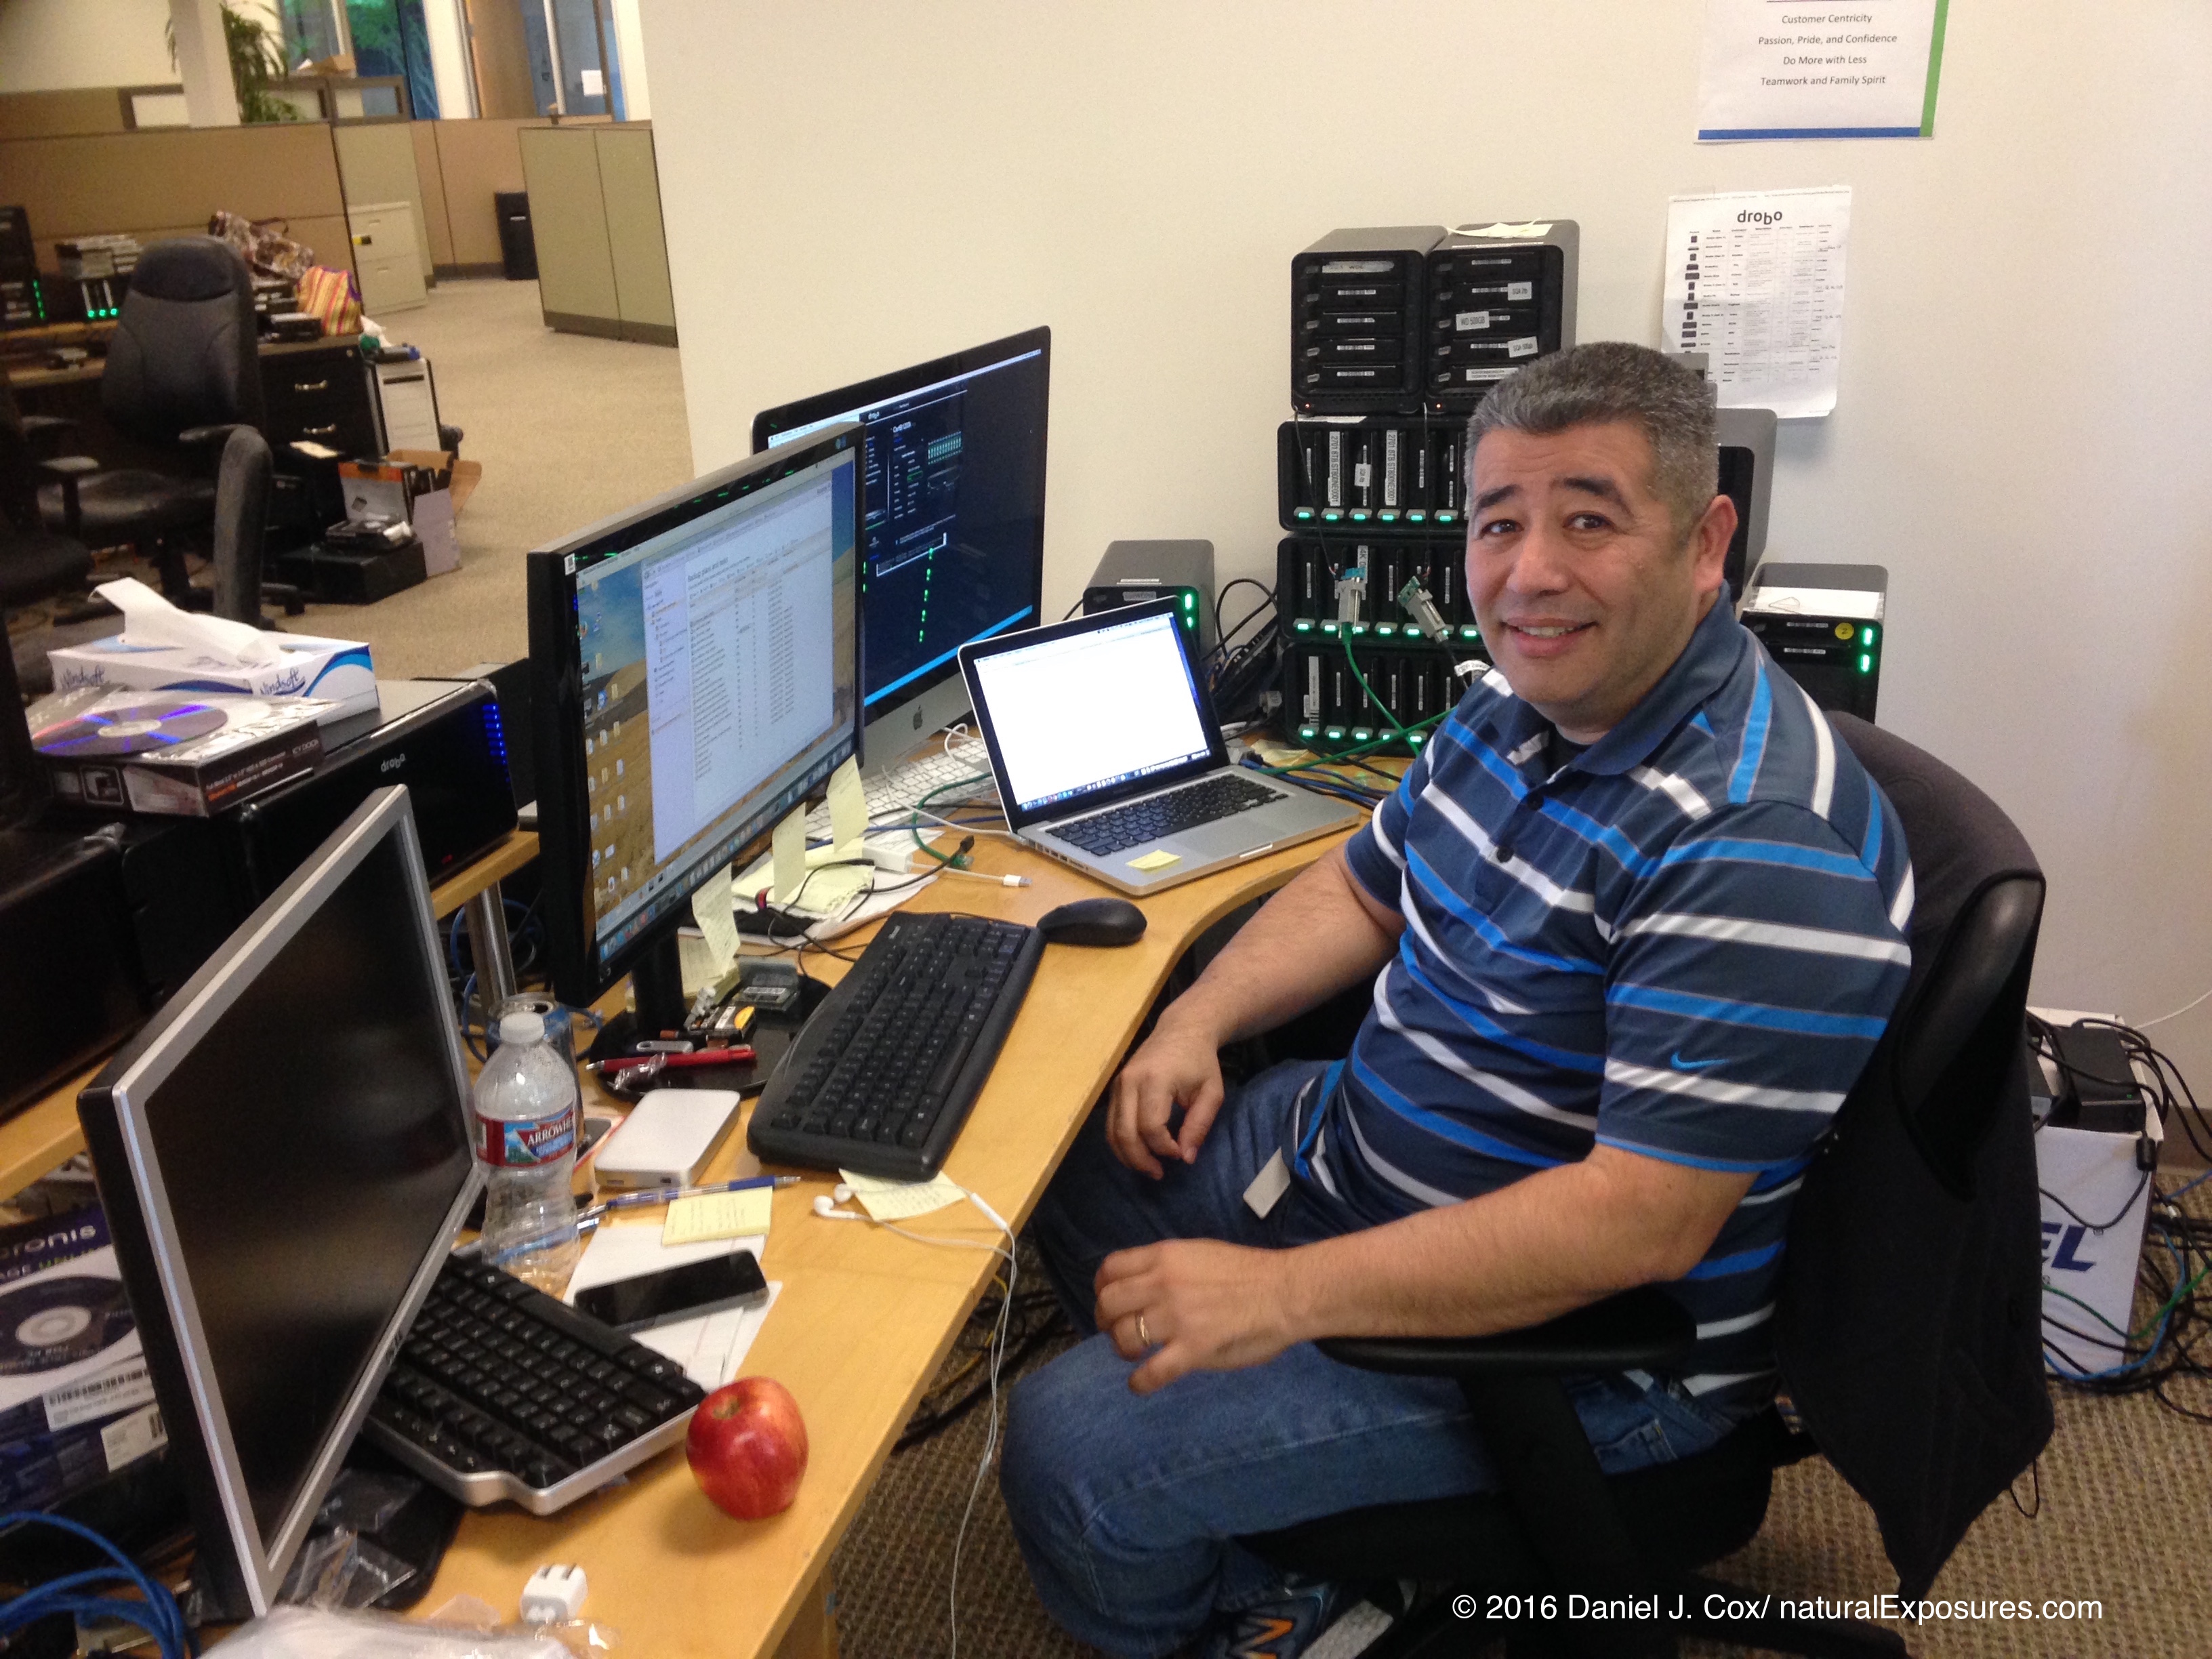 QA Software Engineer, Albert Langarica hard at work coding the great Drobo software.